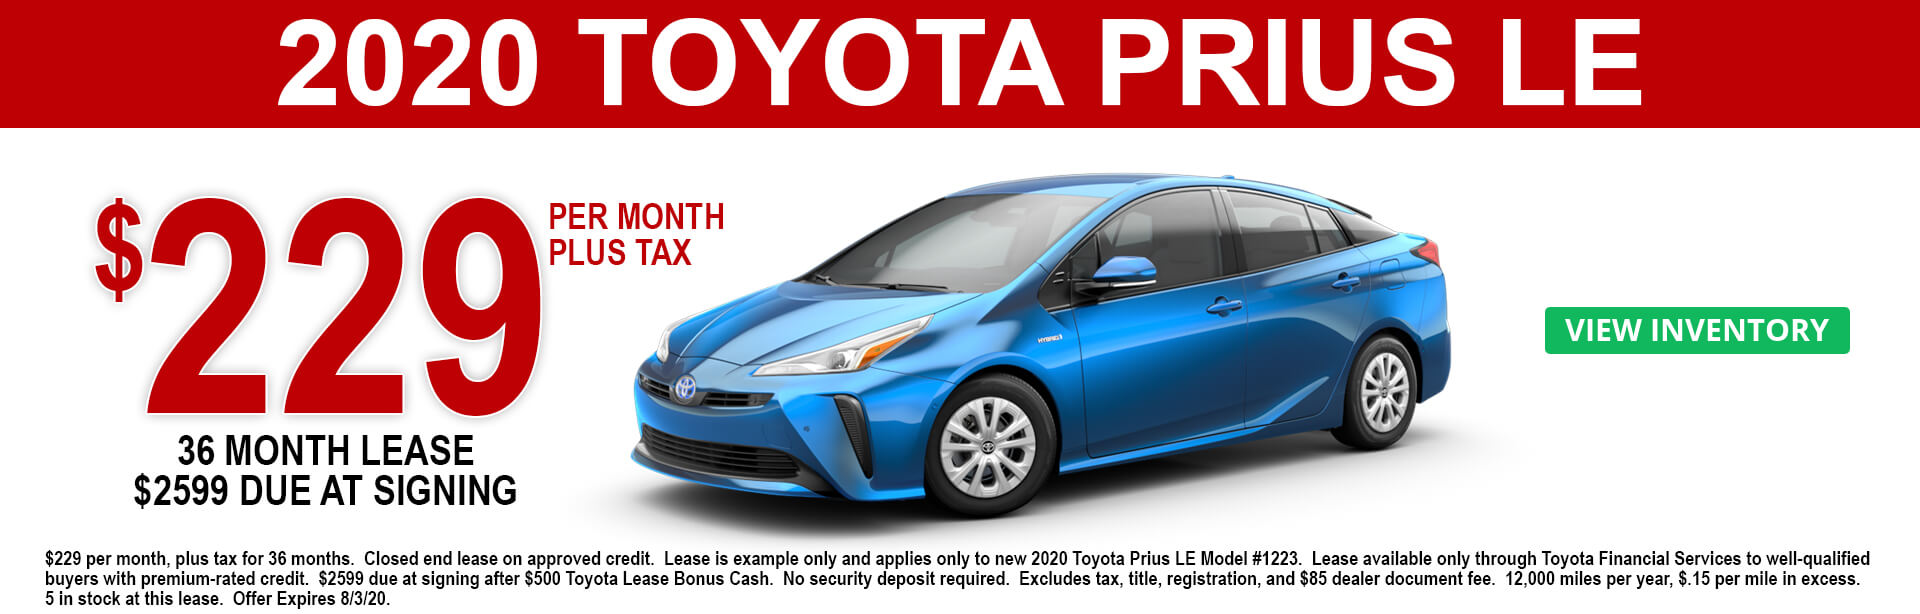 2020 Toyota Prius LE Lease offer $229 a month